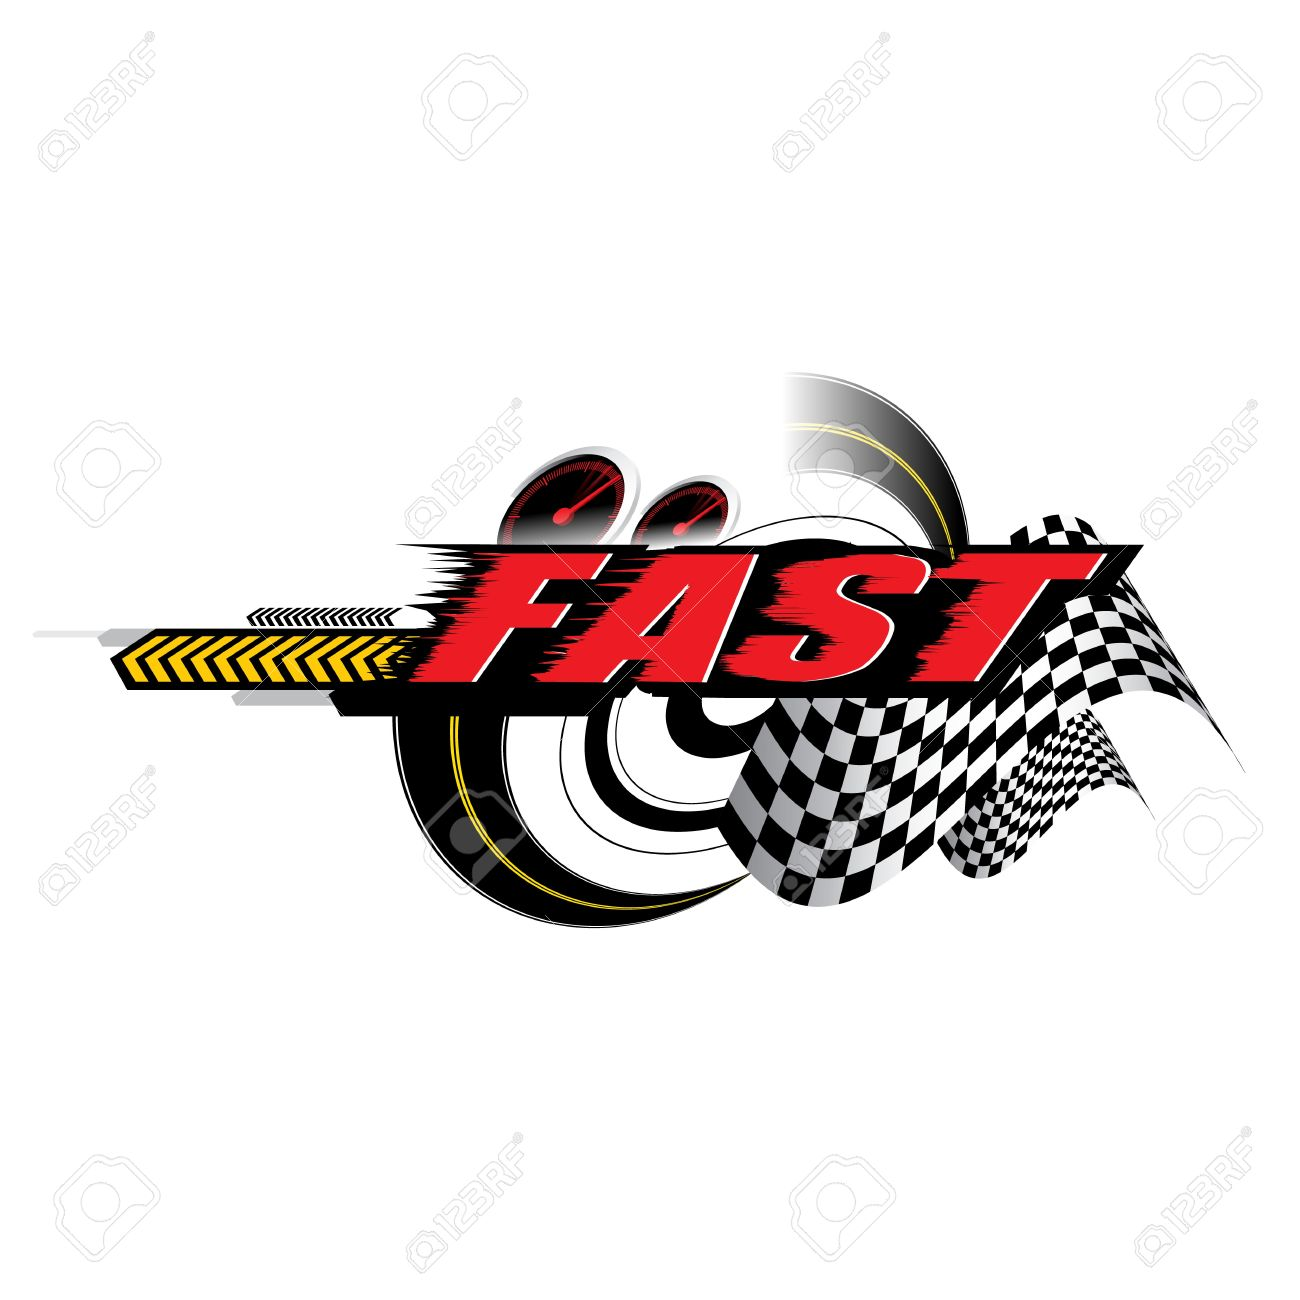 Speed logo clipart image library download Speed logo clipart - ClipartFest image library download